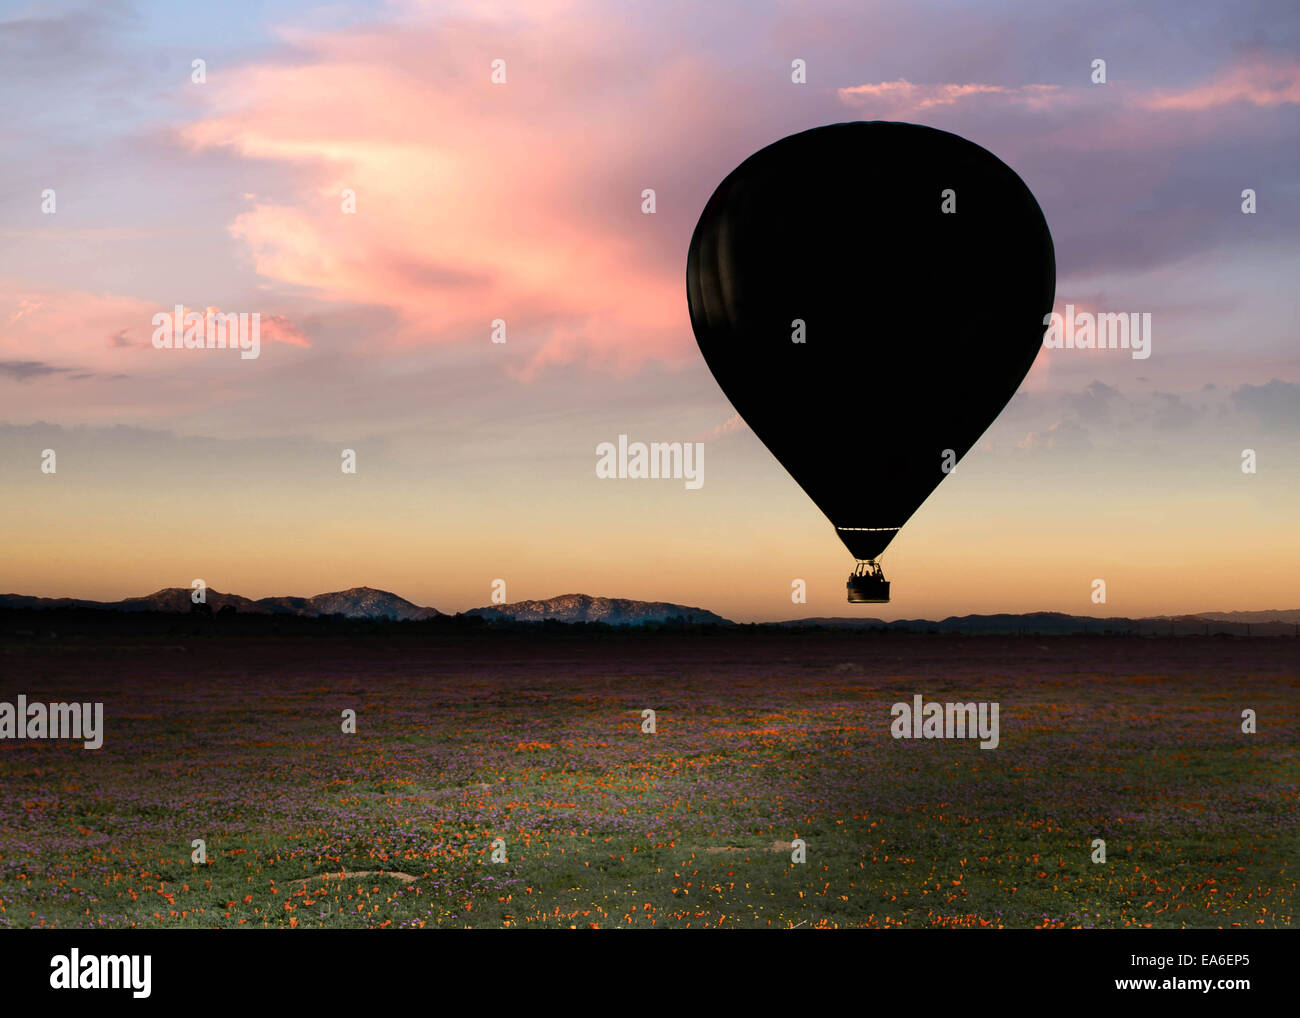 Hot air balloon on early morning - Stock Image